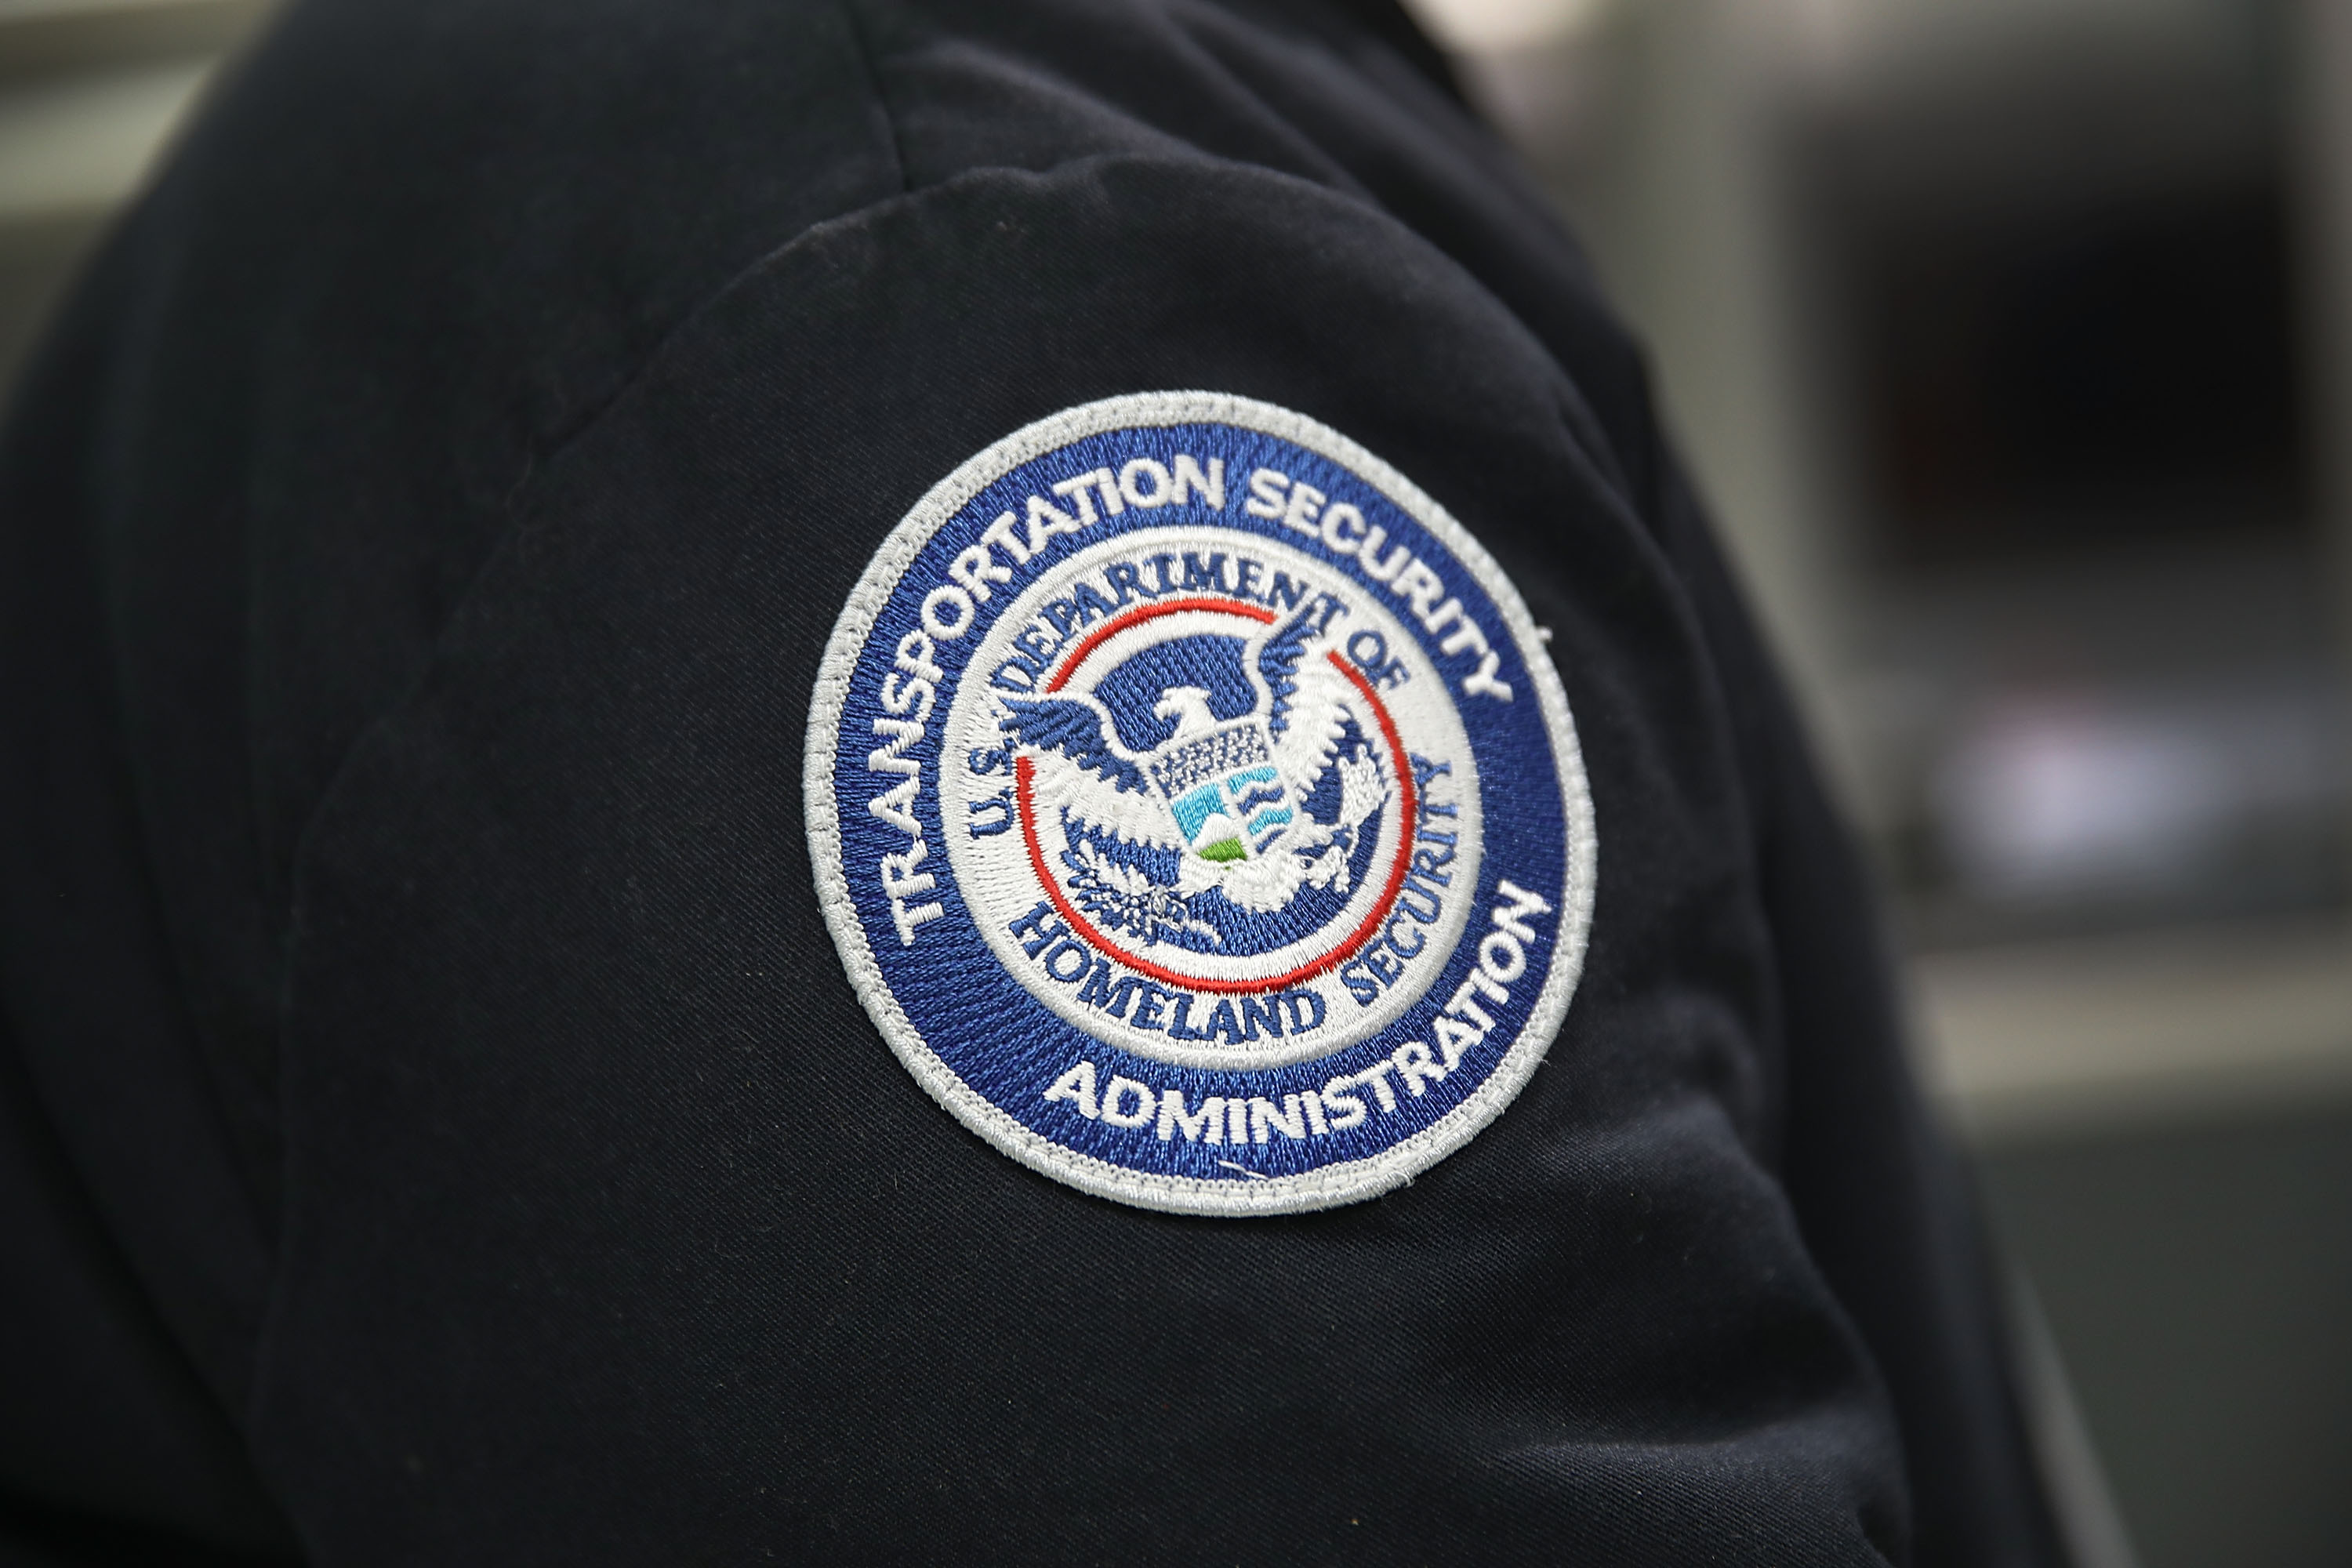 A patch is seen on the jacket of a Transportation Security Administration official on Oct. 24, 2017 in Miami, Florida.